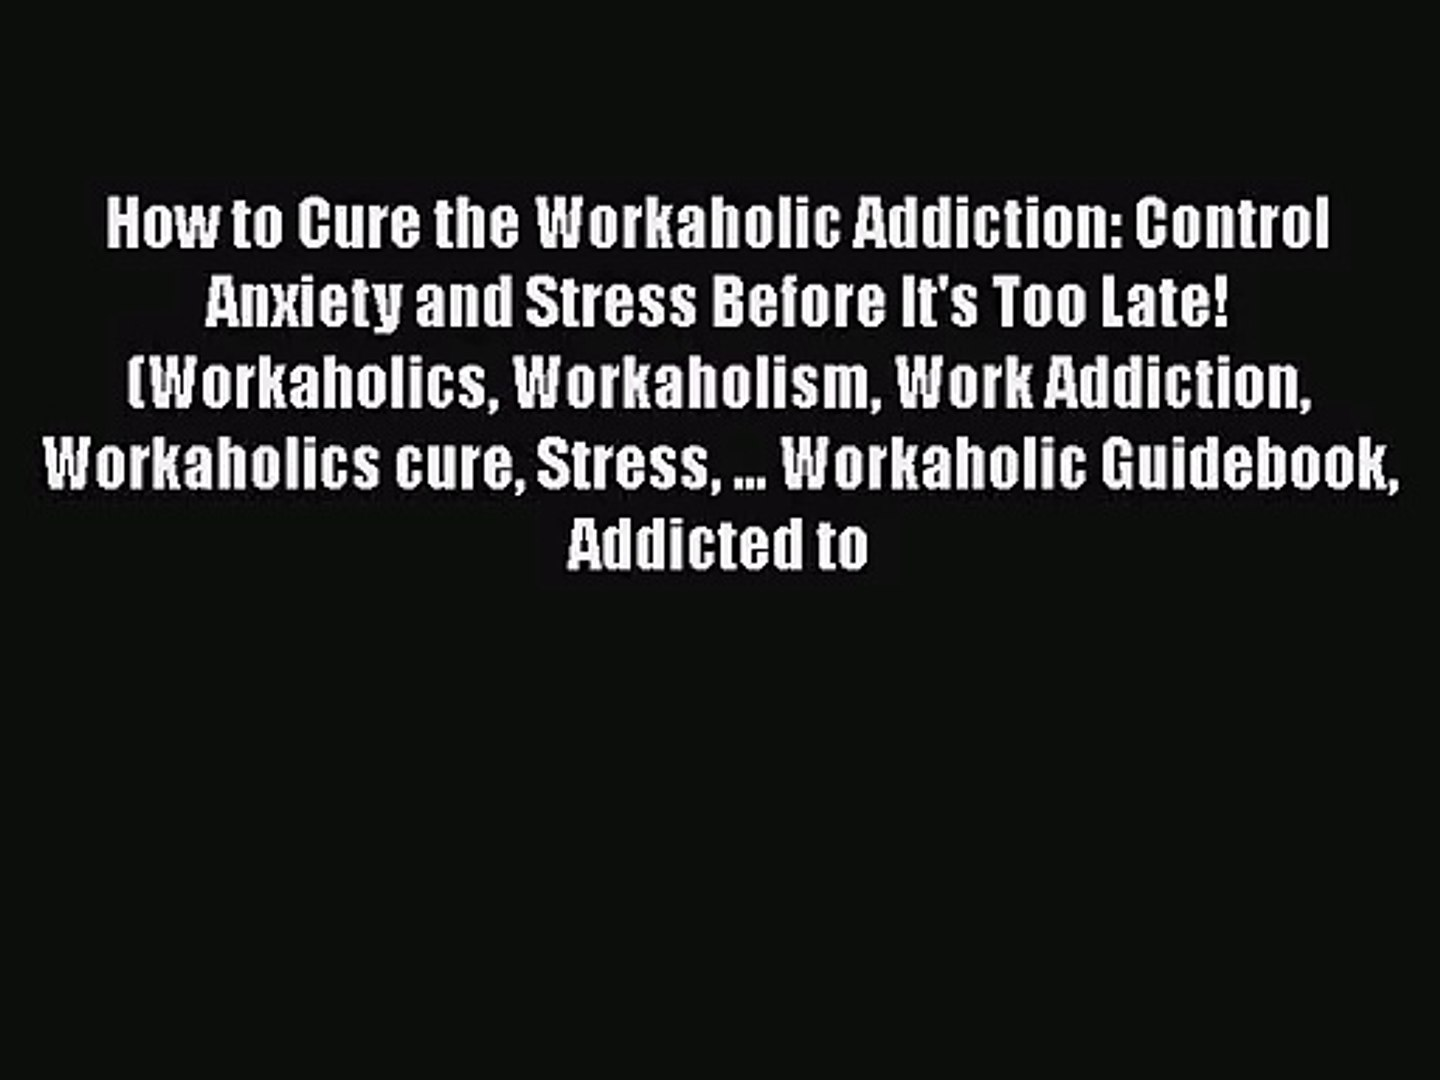 How to Cure the Workaholic Addiction: Control Anxiety and Stress Before It's Too Late! (Workaho